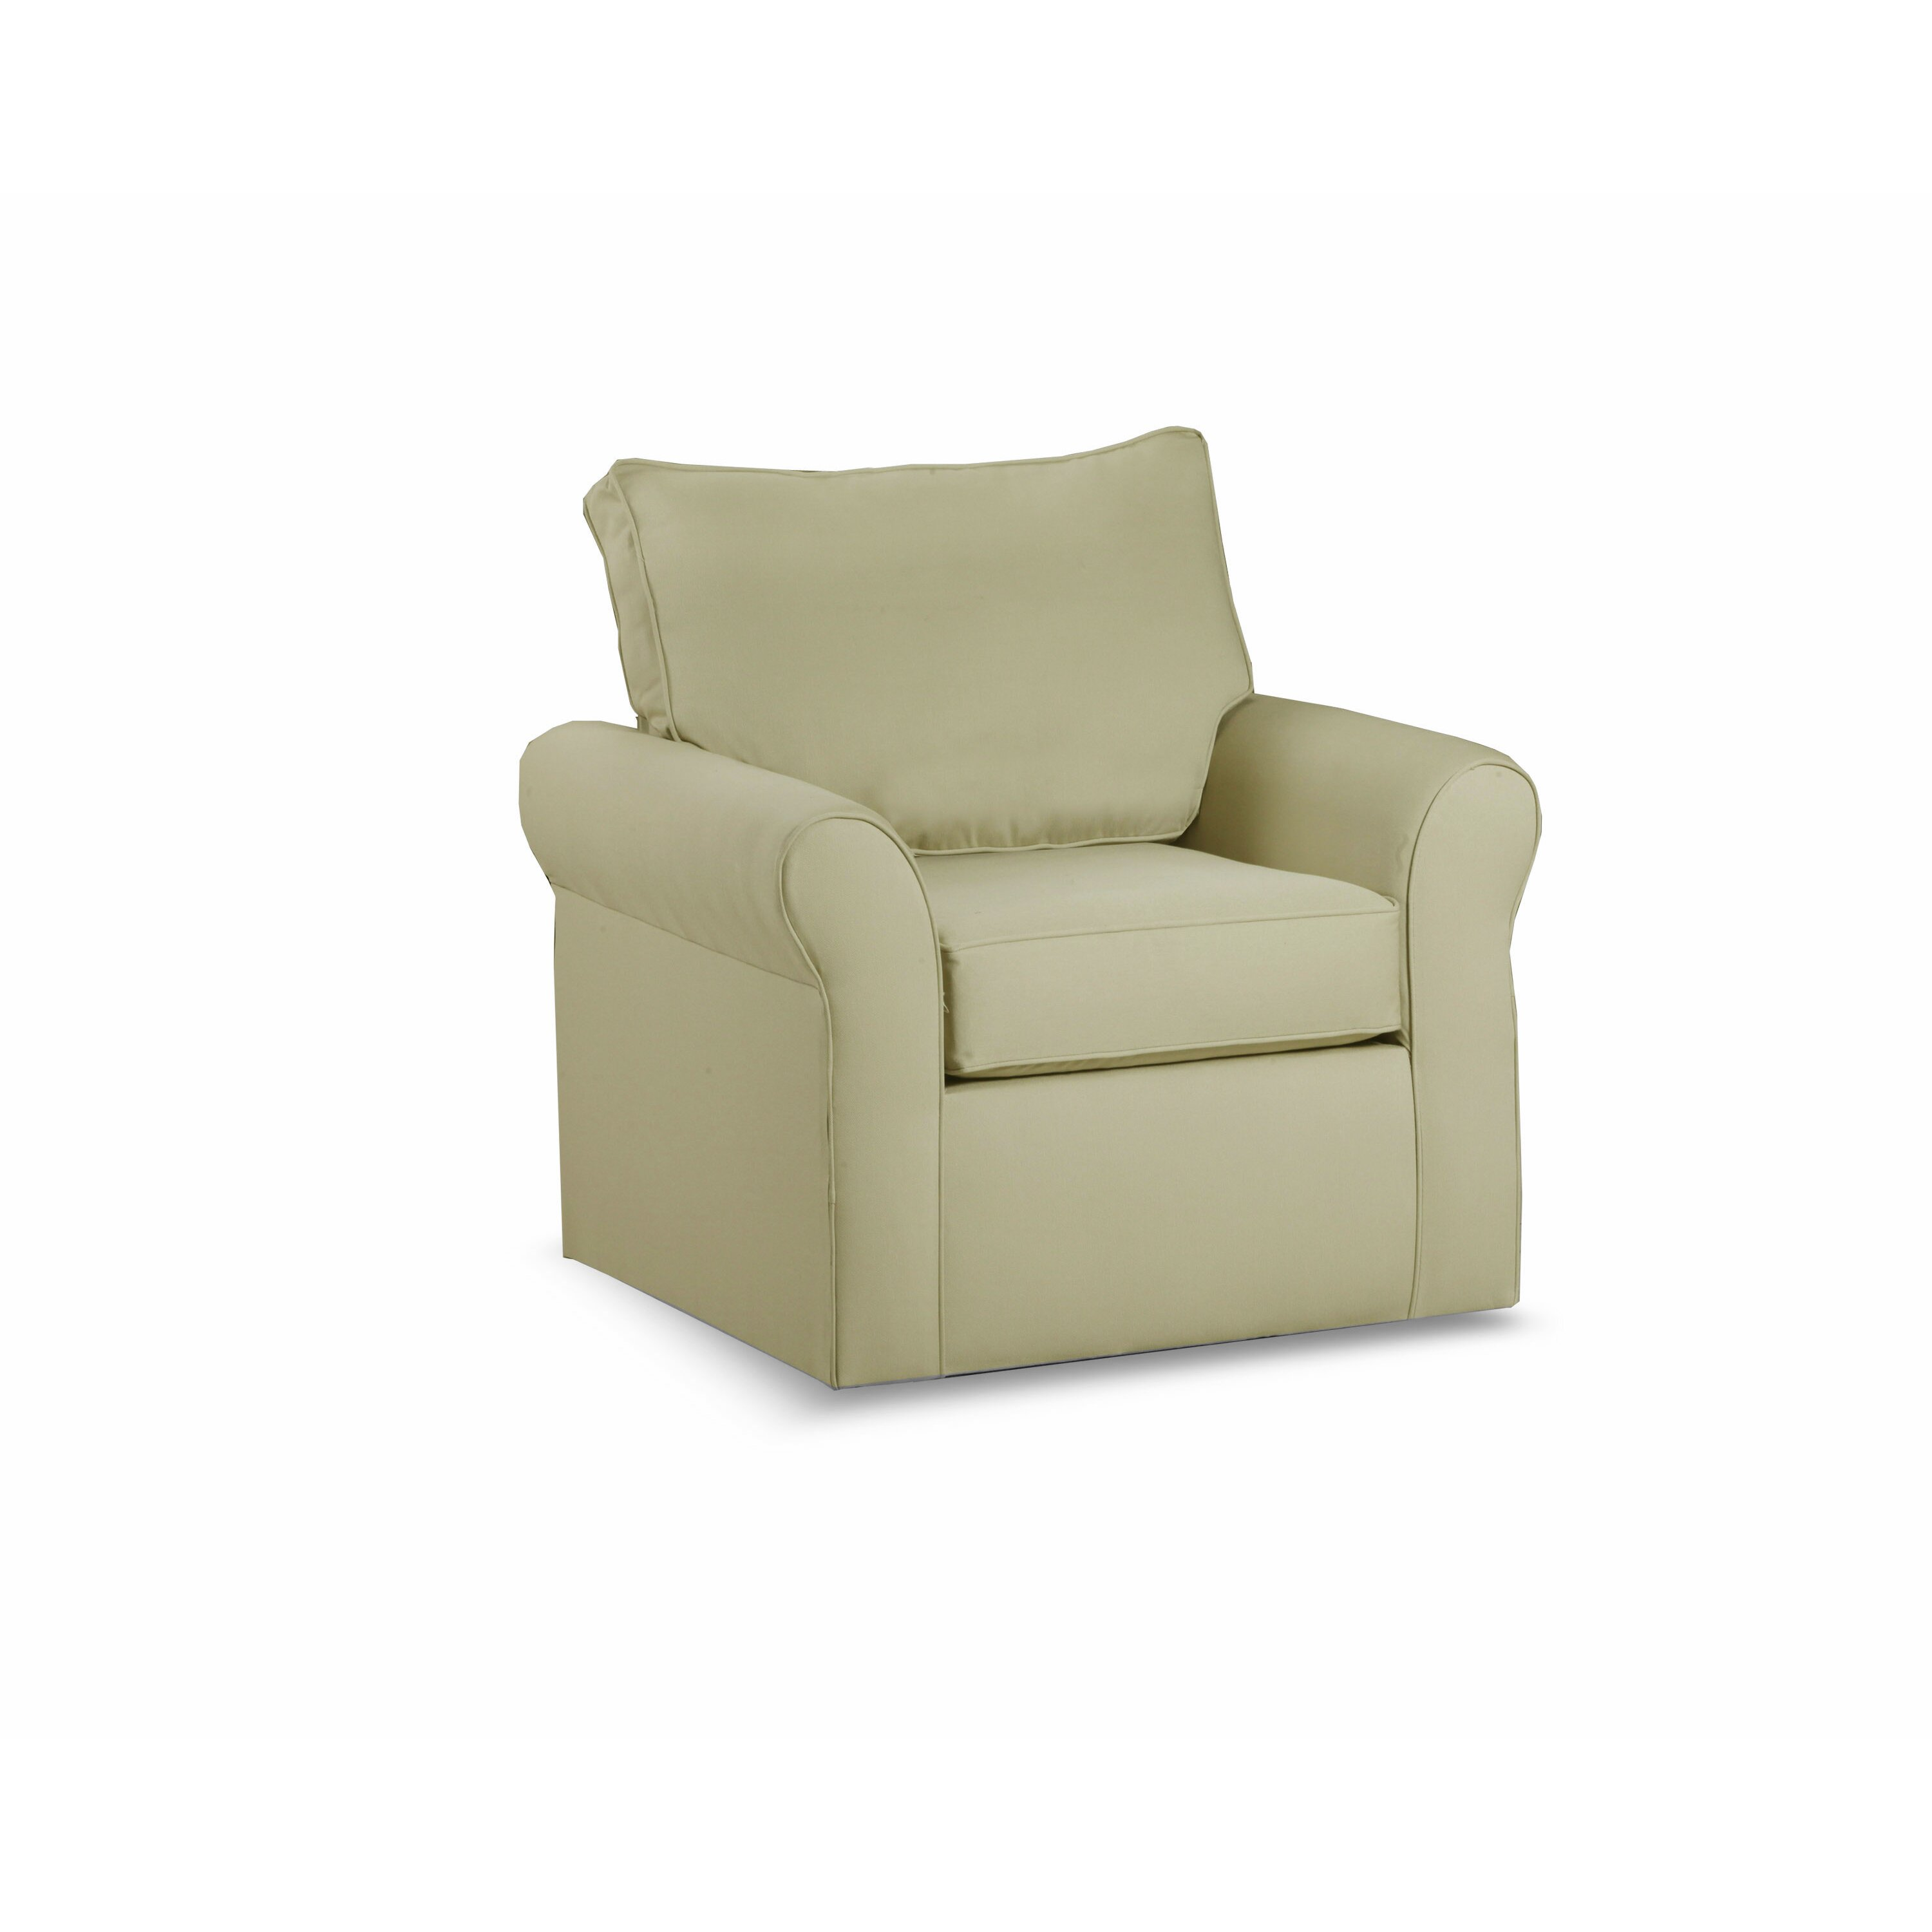 Darby home co adelina swivel arm chair reviews wayfair for Swivel accent chairs with arms